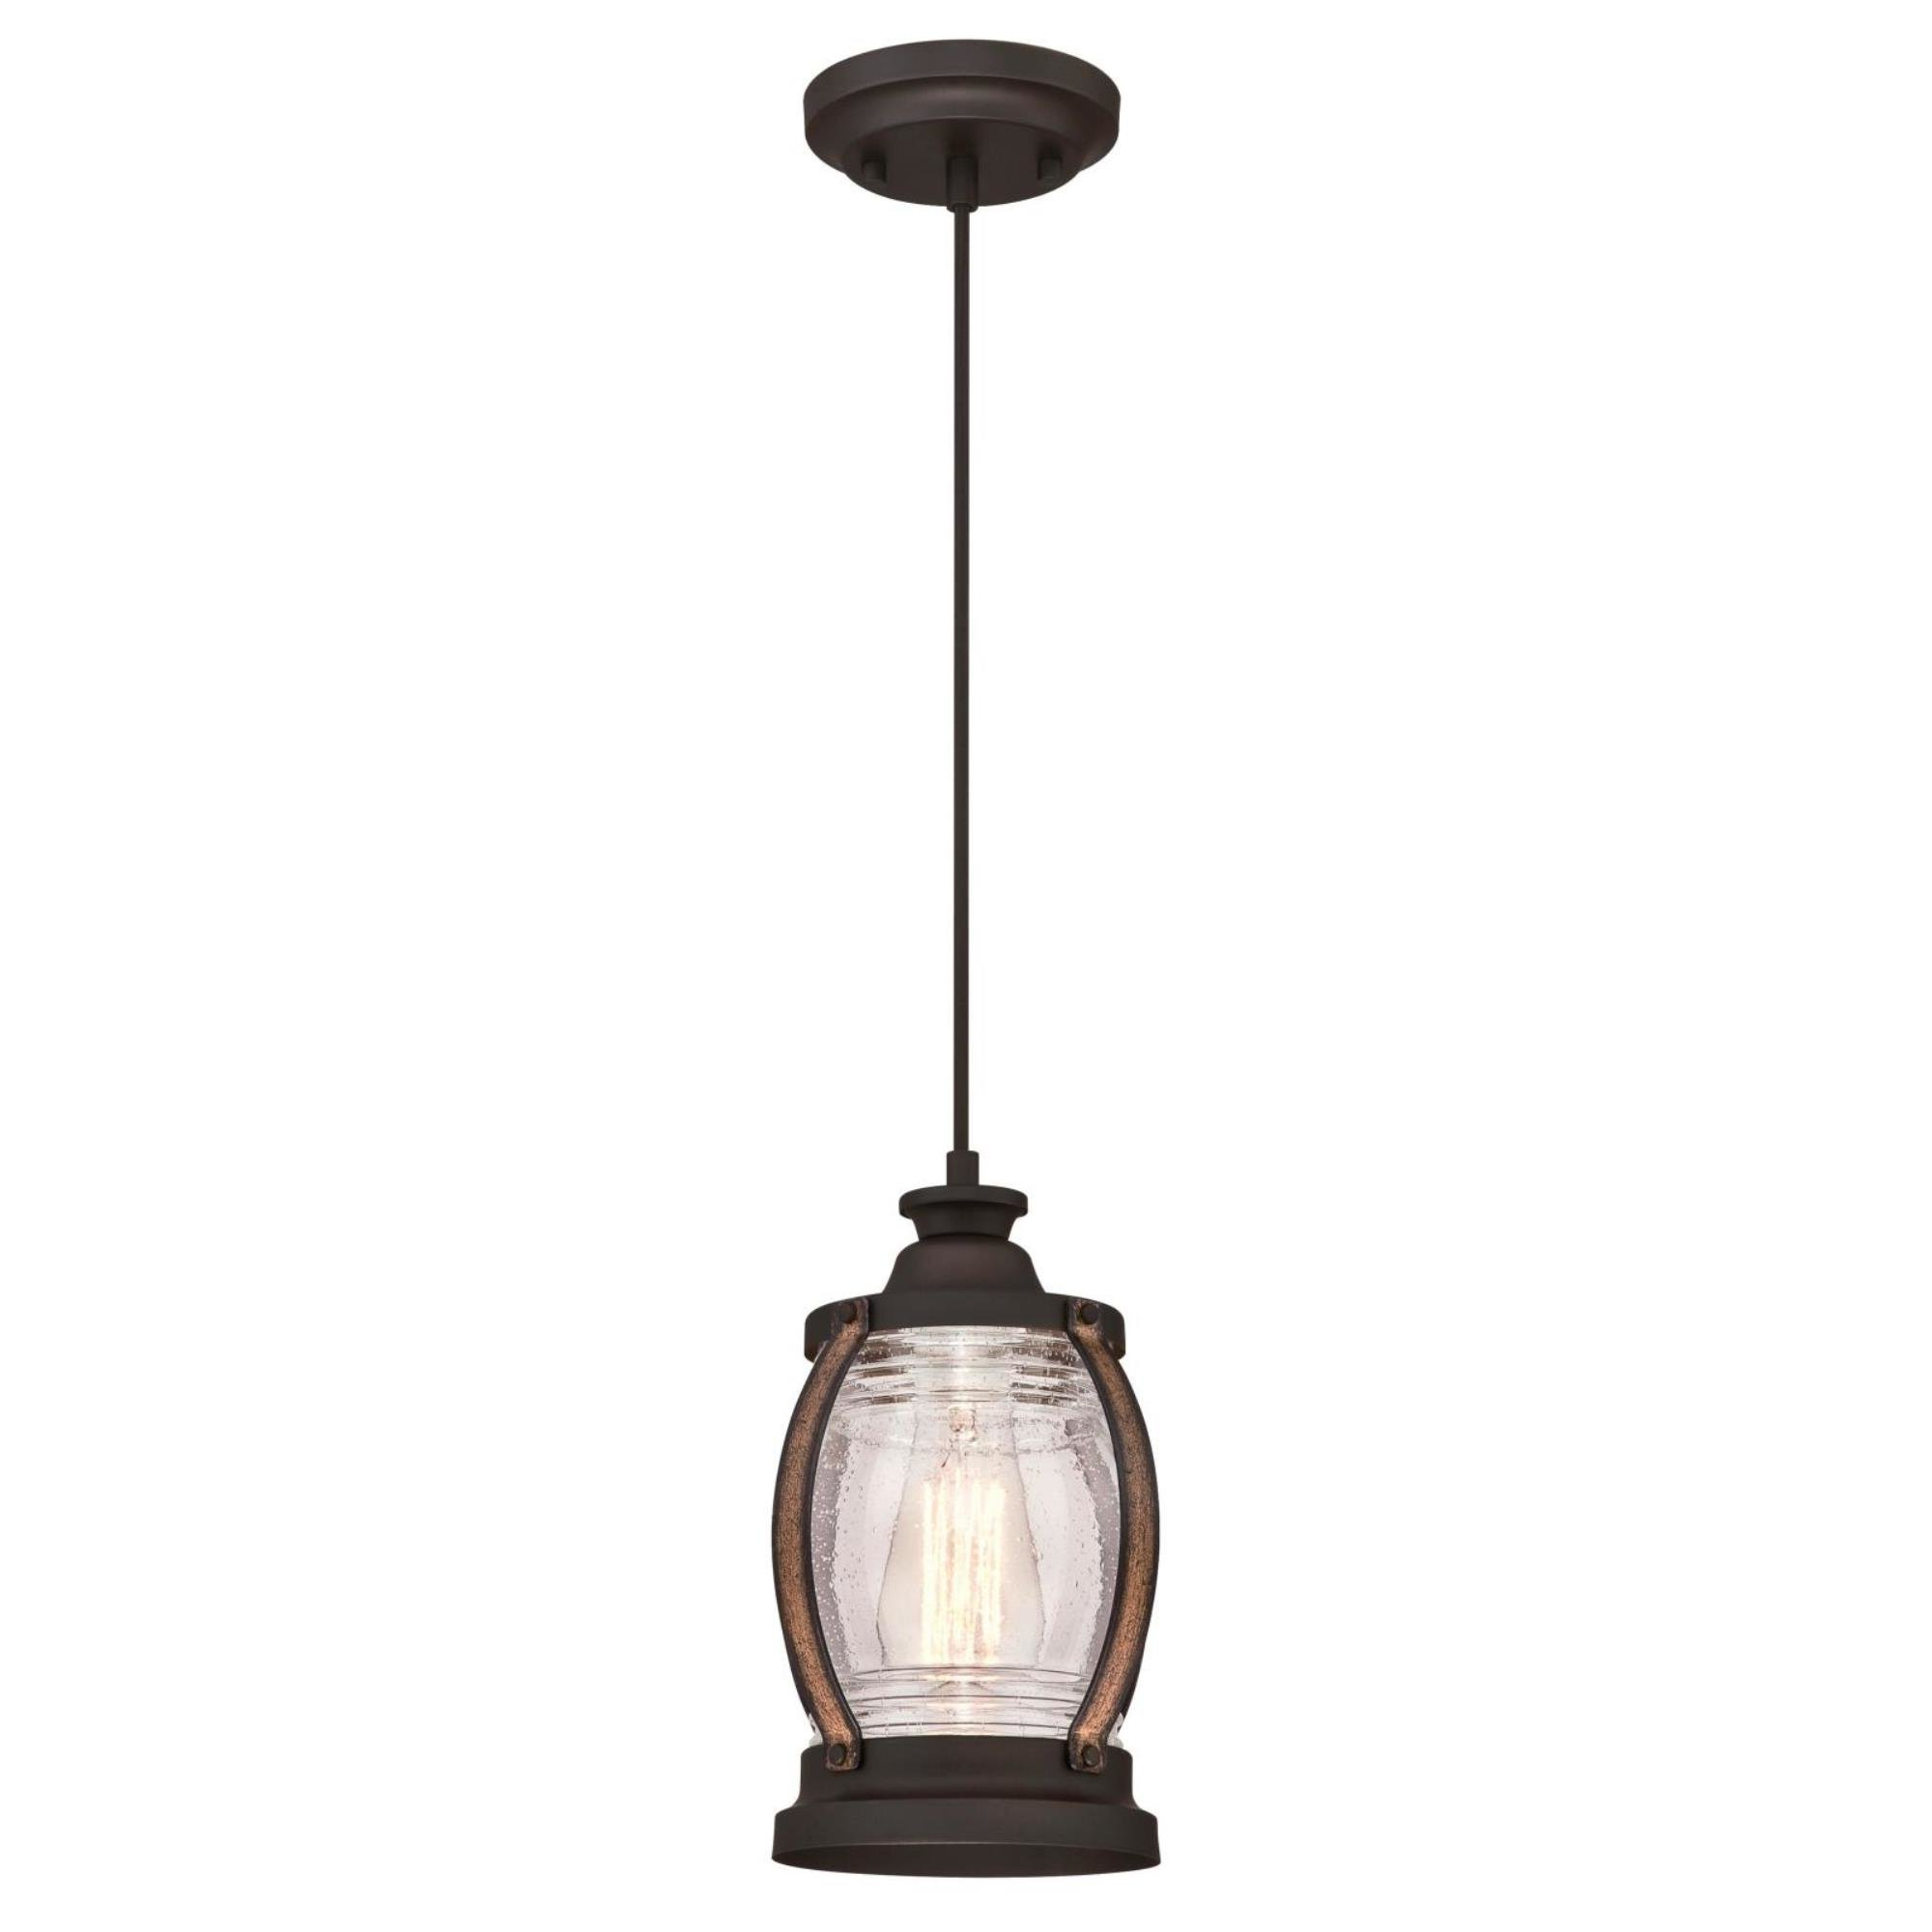 Breakwater Bay Ginsburg 1-Light Single Cylinder Pendant intended for Best and Newest Willems 1-Light Single Drum Pendants